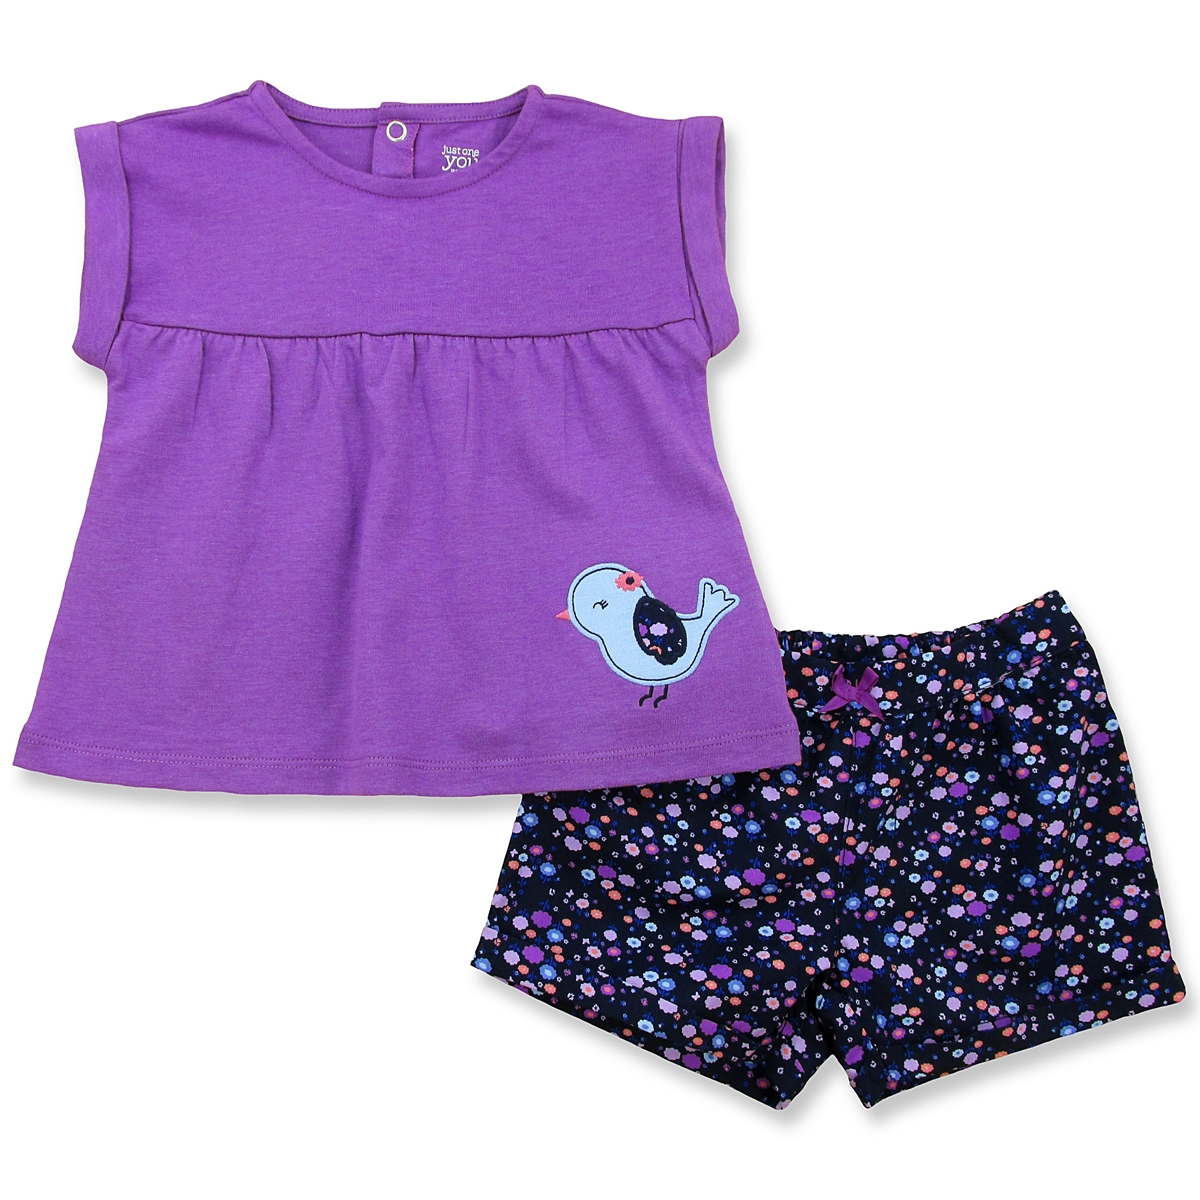 Wholesale branded baby clothes Wholesale baby clothes